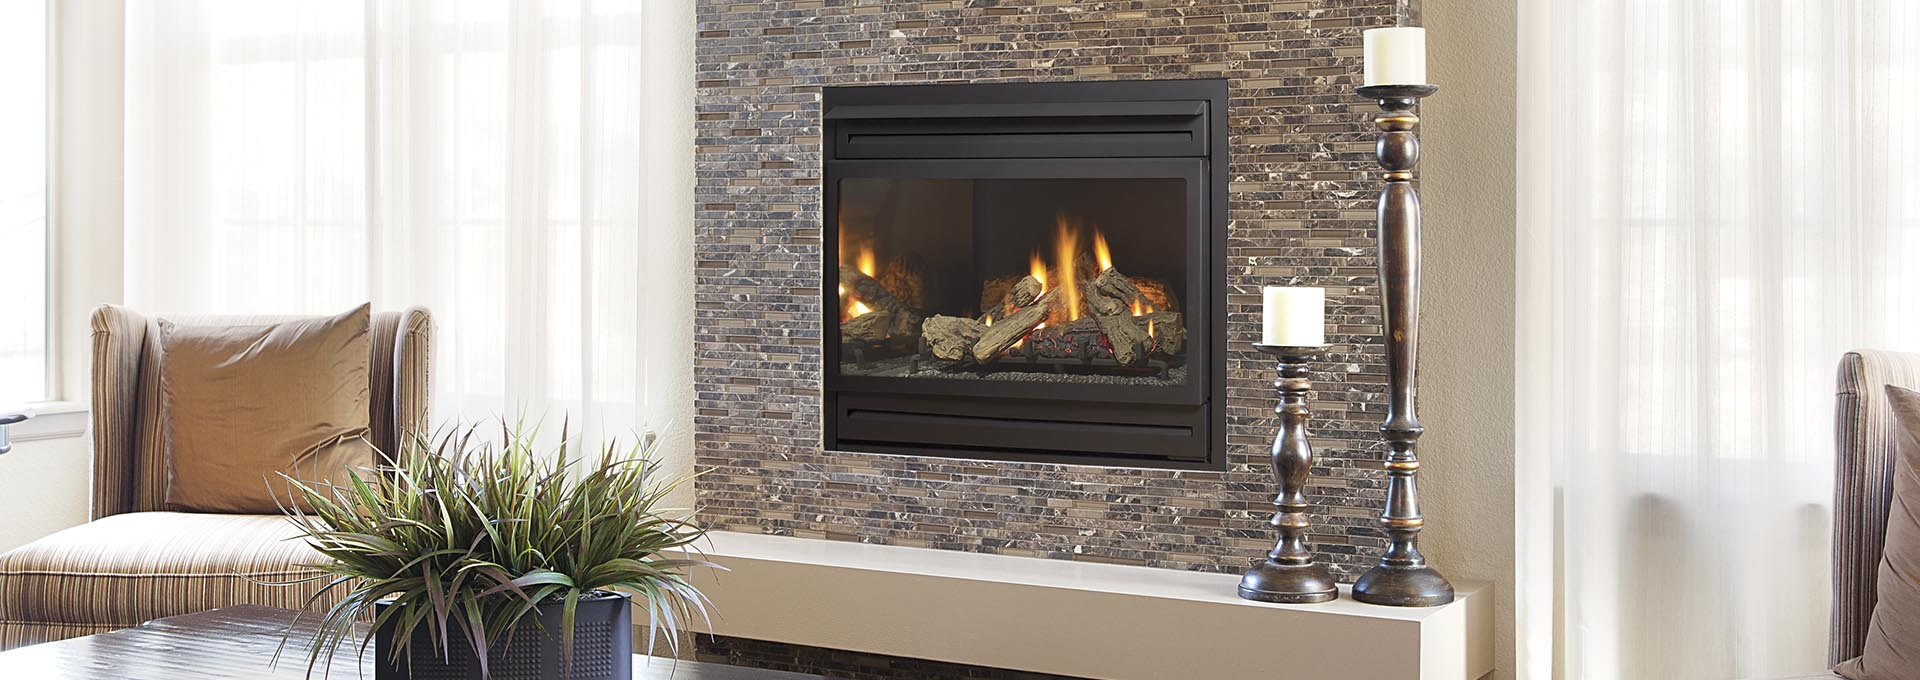 Running Gas Line To Fireplace Traditional Gas Fireplace Panorama Pg36 Regency Fireplace Products